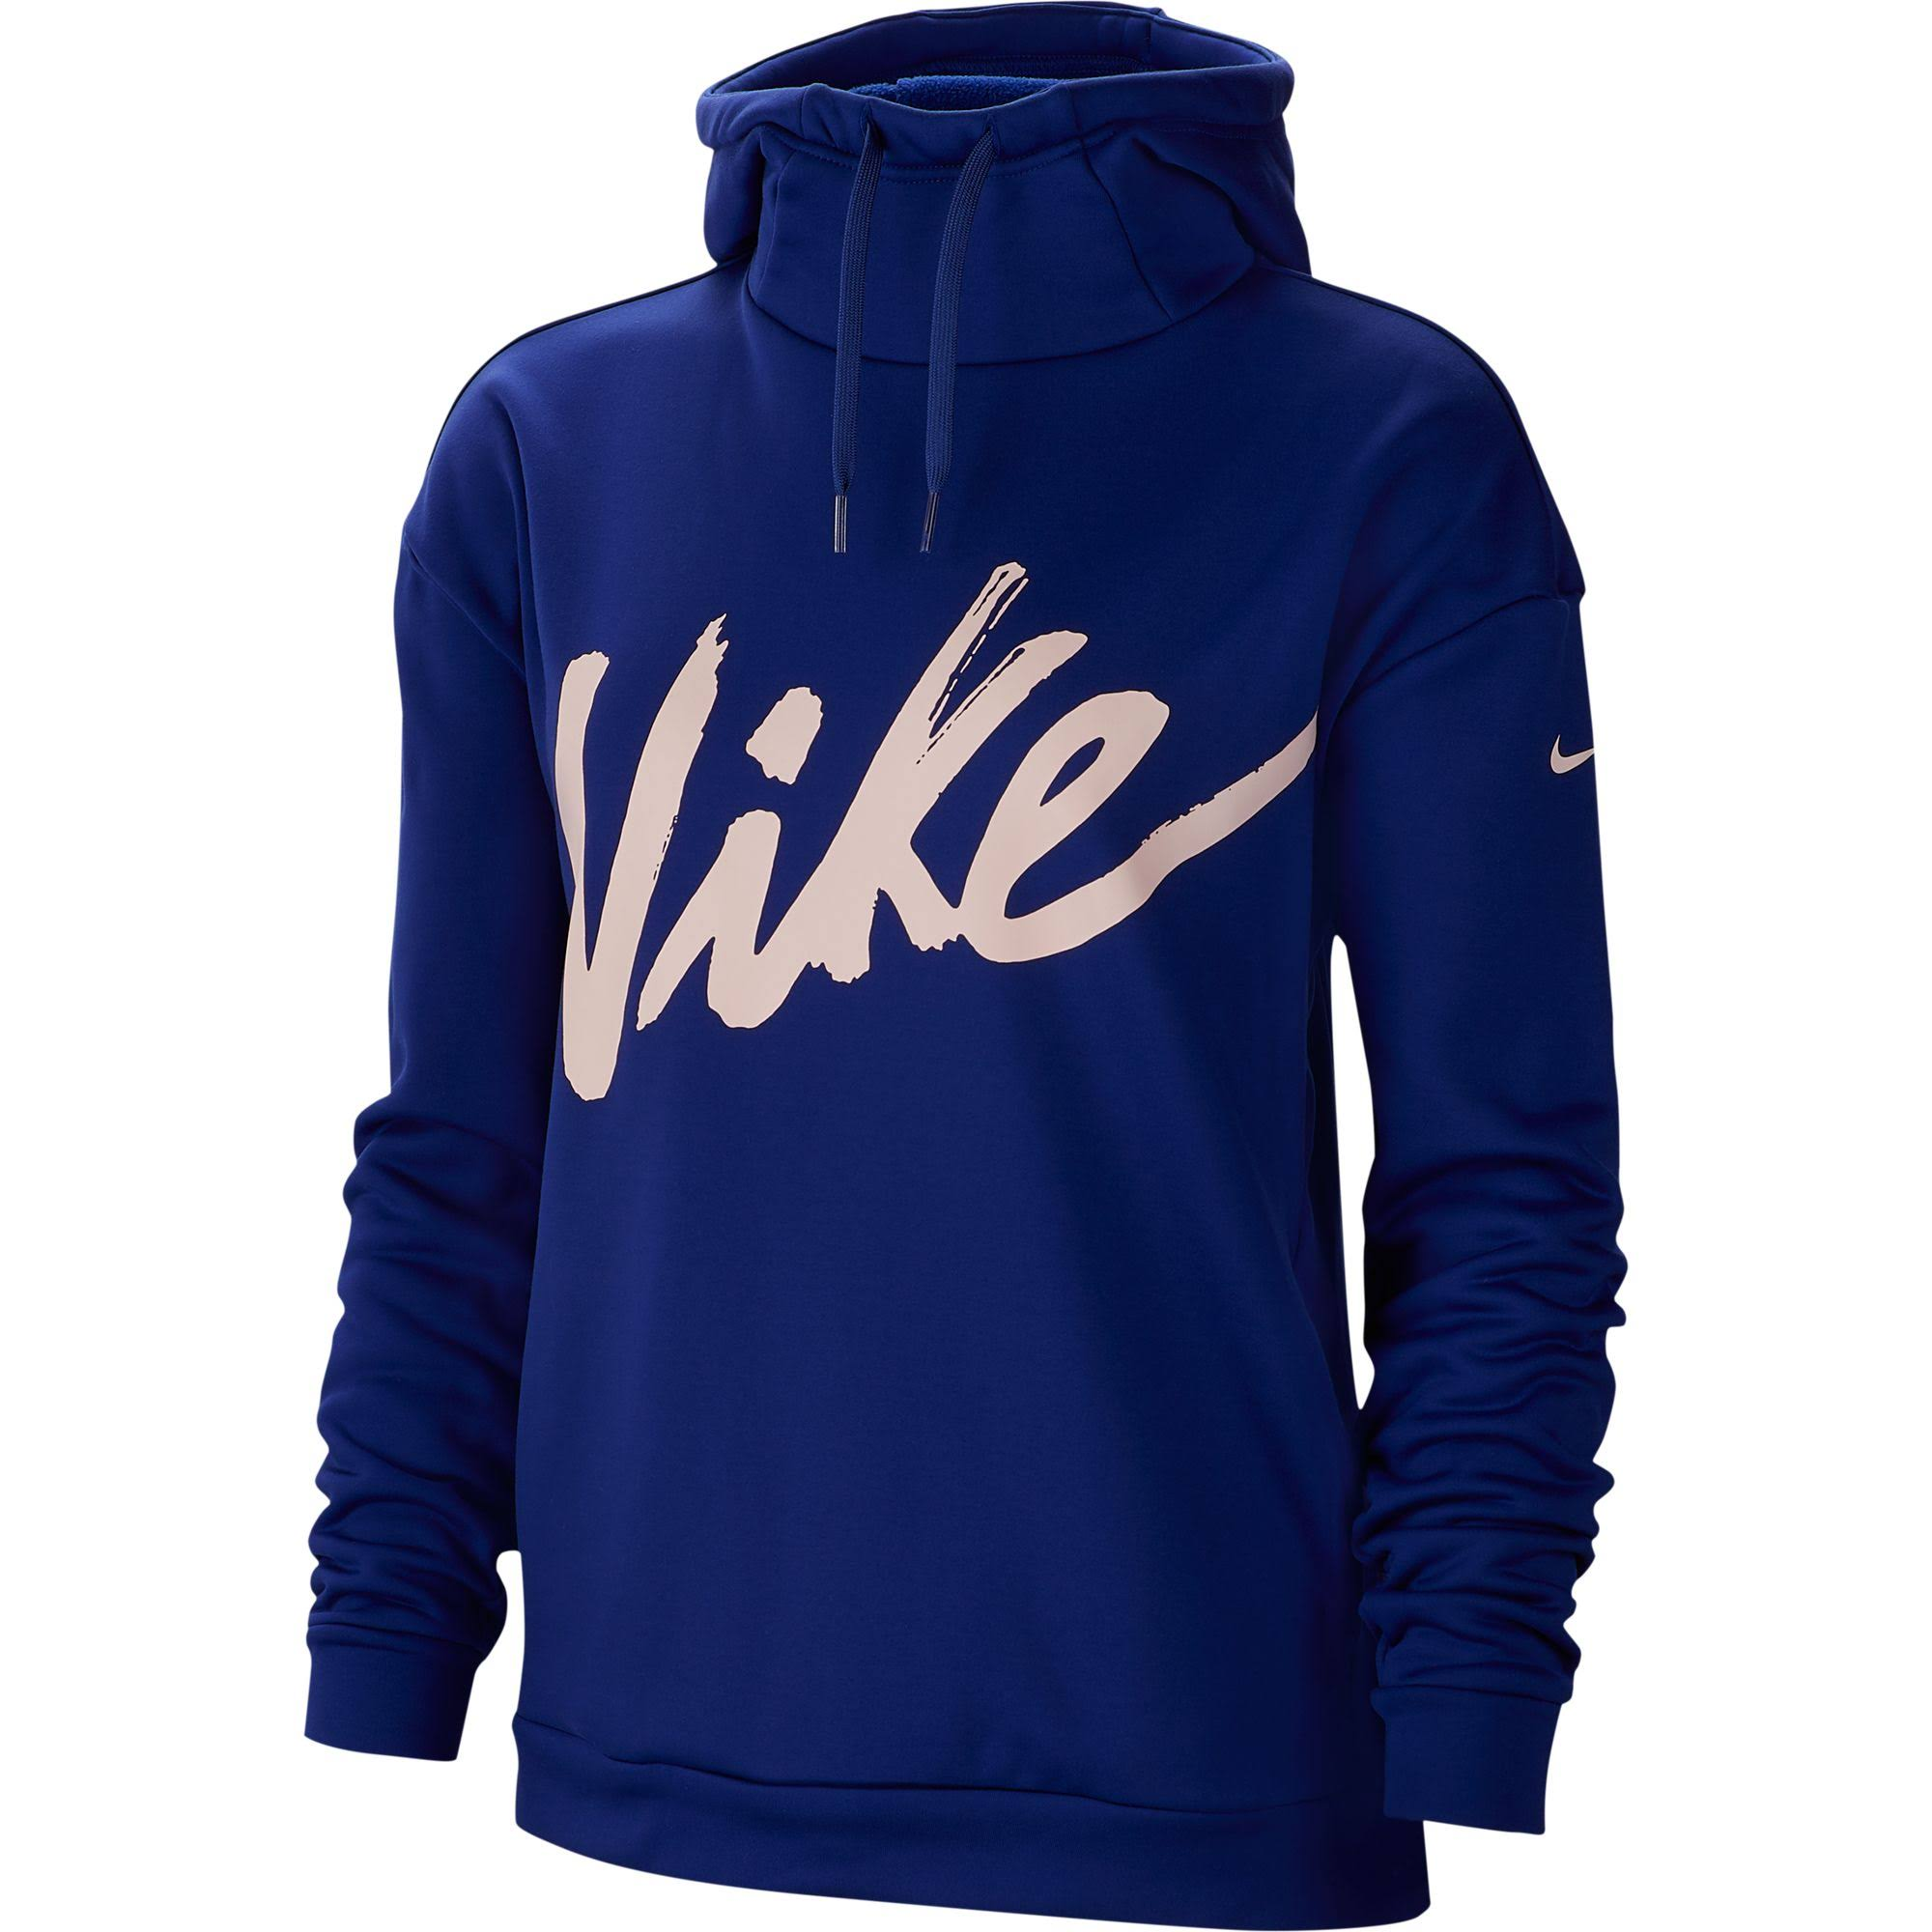 Nike Women's Therma Po Fleece Hoodie, Size: Medium, Blue